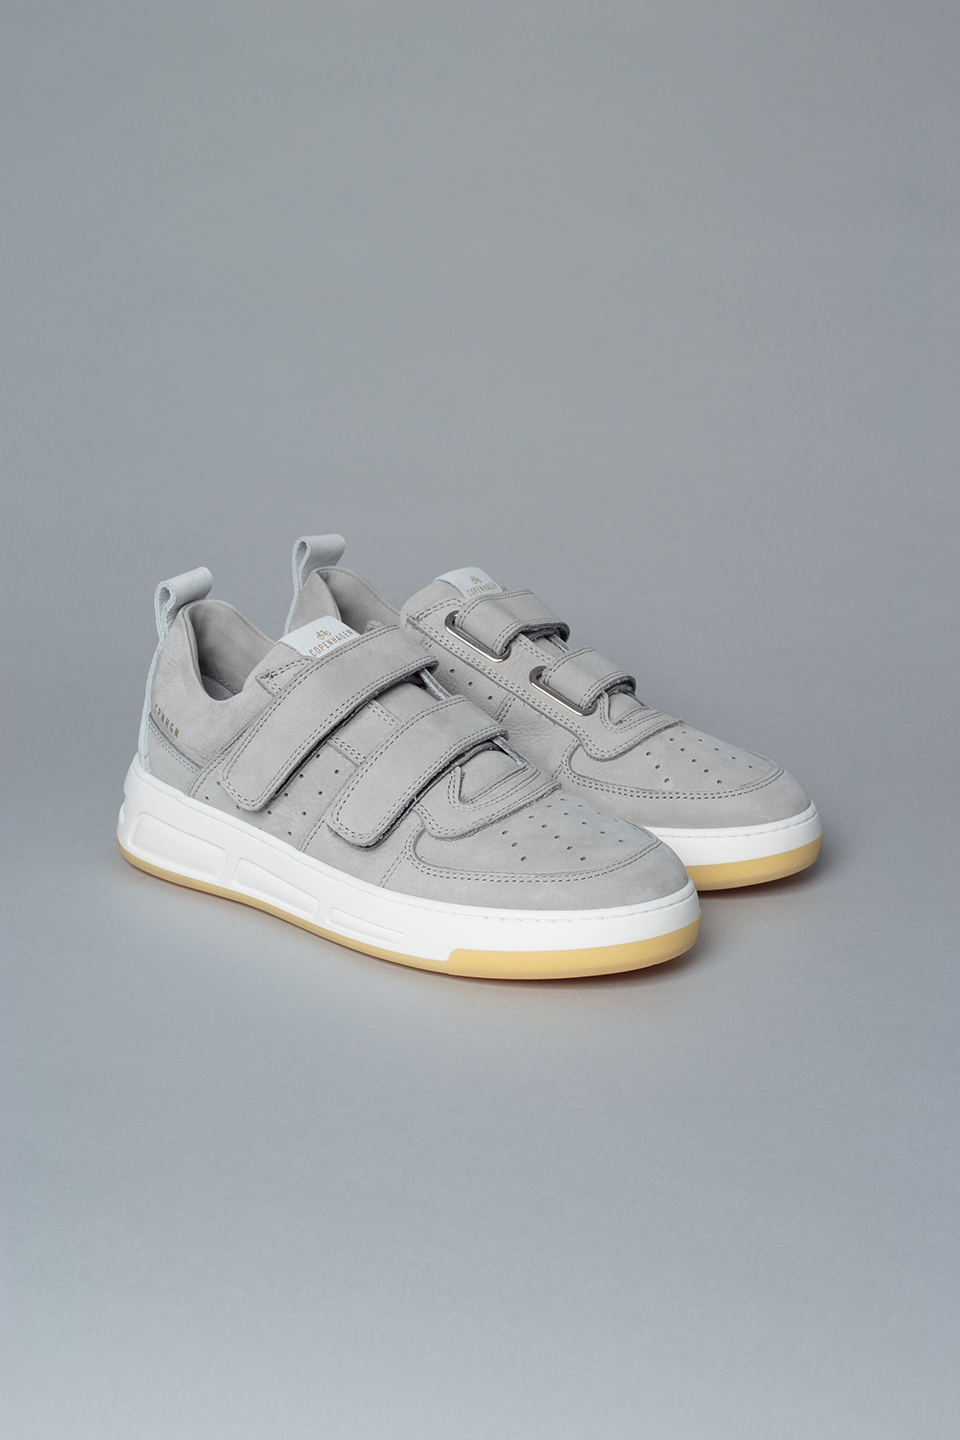 CPH405 nabuc light grey